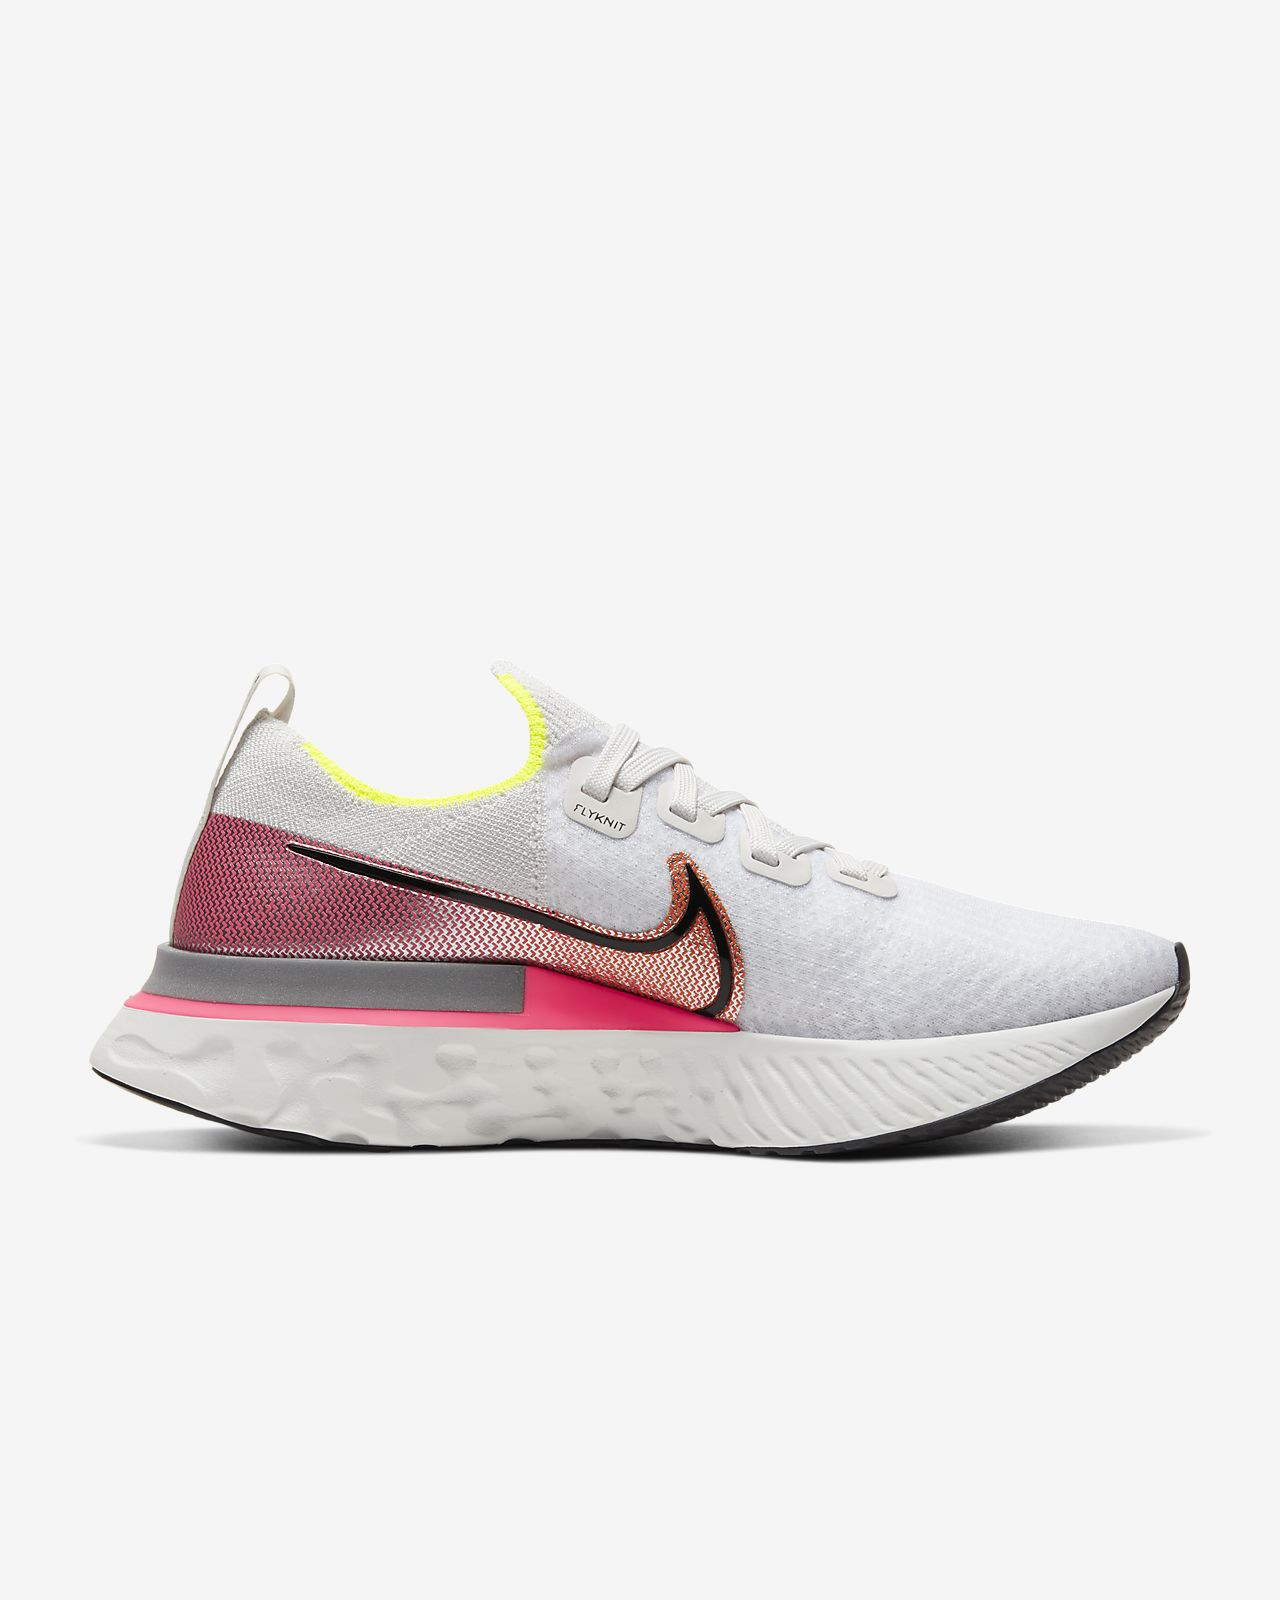 The New Nike React Infinity Run Is Designed to Reduce